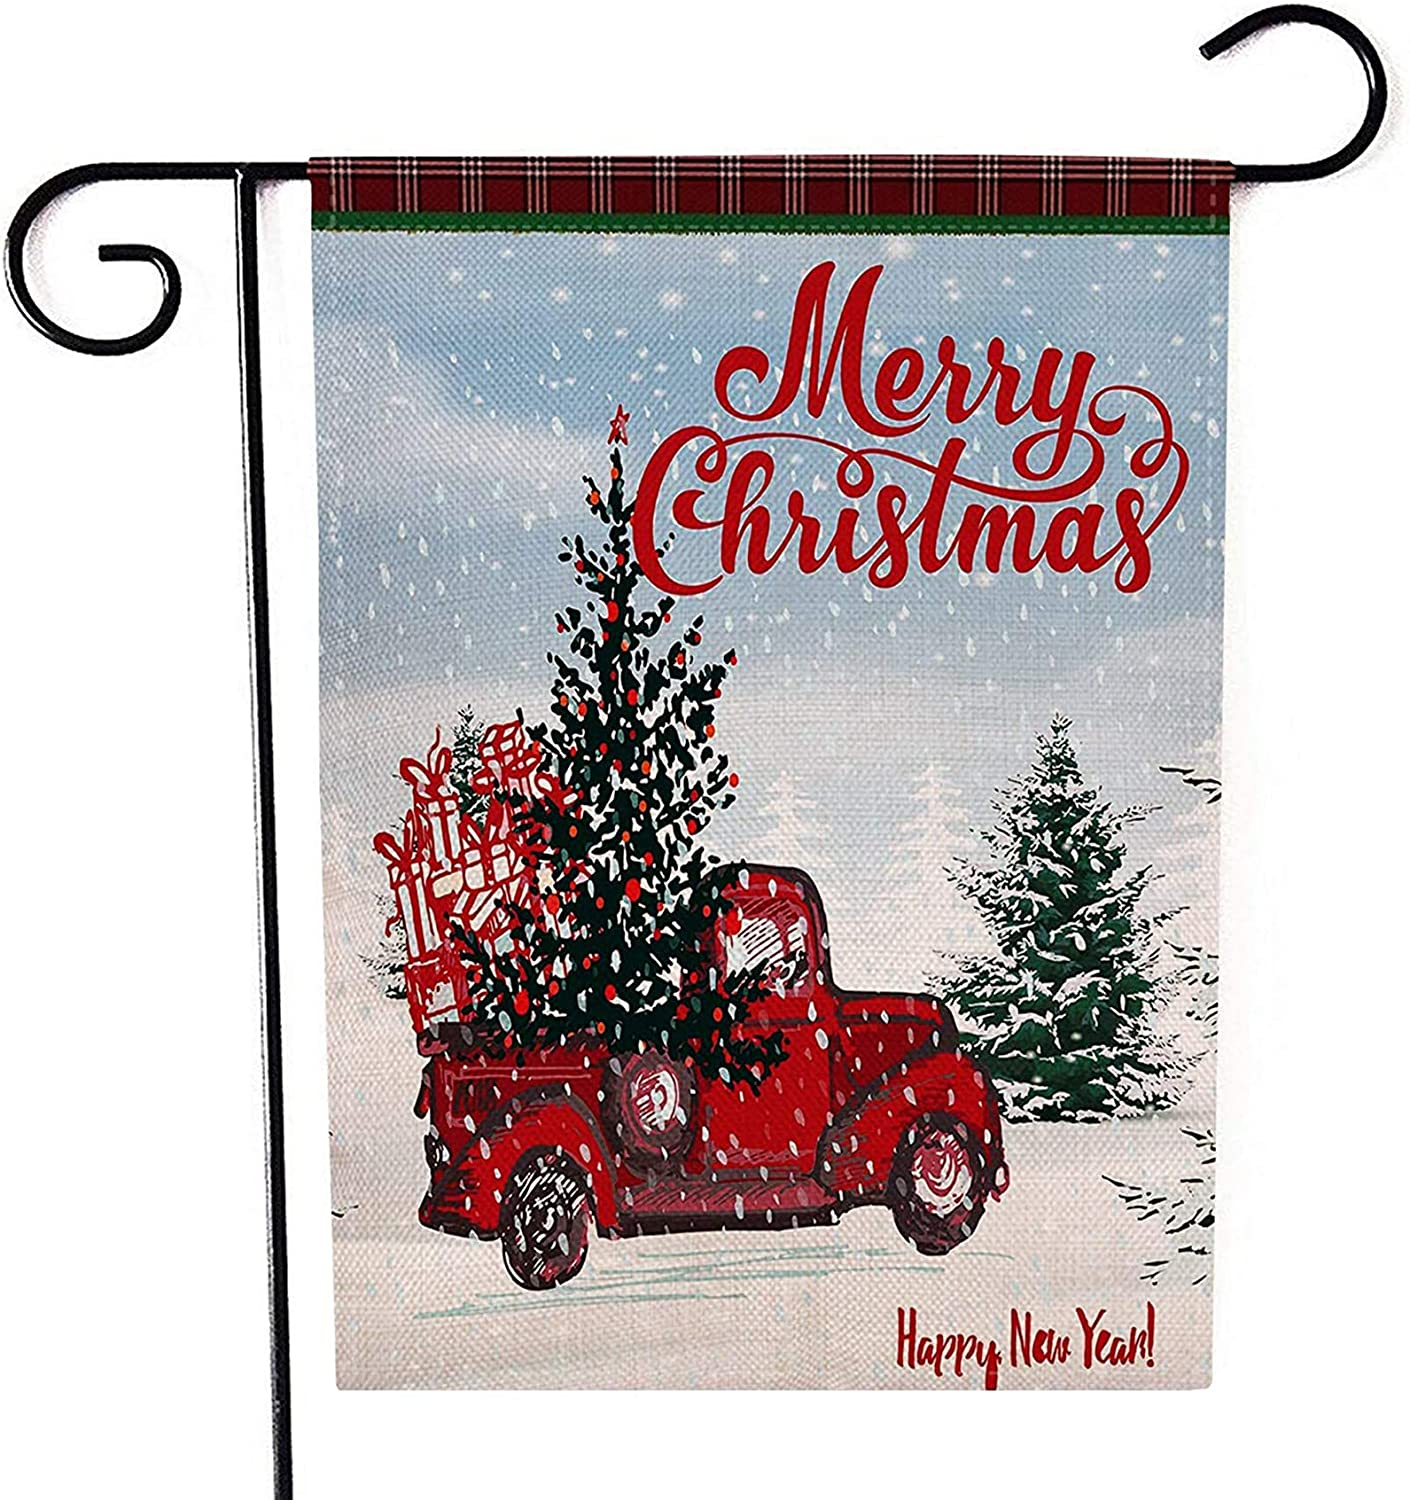 """CHICHIC Christmas Garden Flag Winter Flag Red Truck Christmas Decorations Xmas Burlap House Yard Lawn Flag Holiday Vertical for Outside Christmas Outdoor Decorations Seasonal Home Decor, 12.5"""" x 18.5"""""""